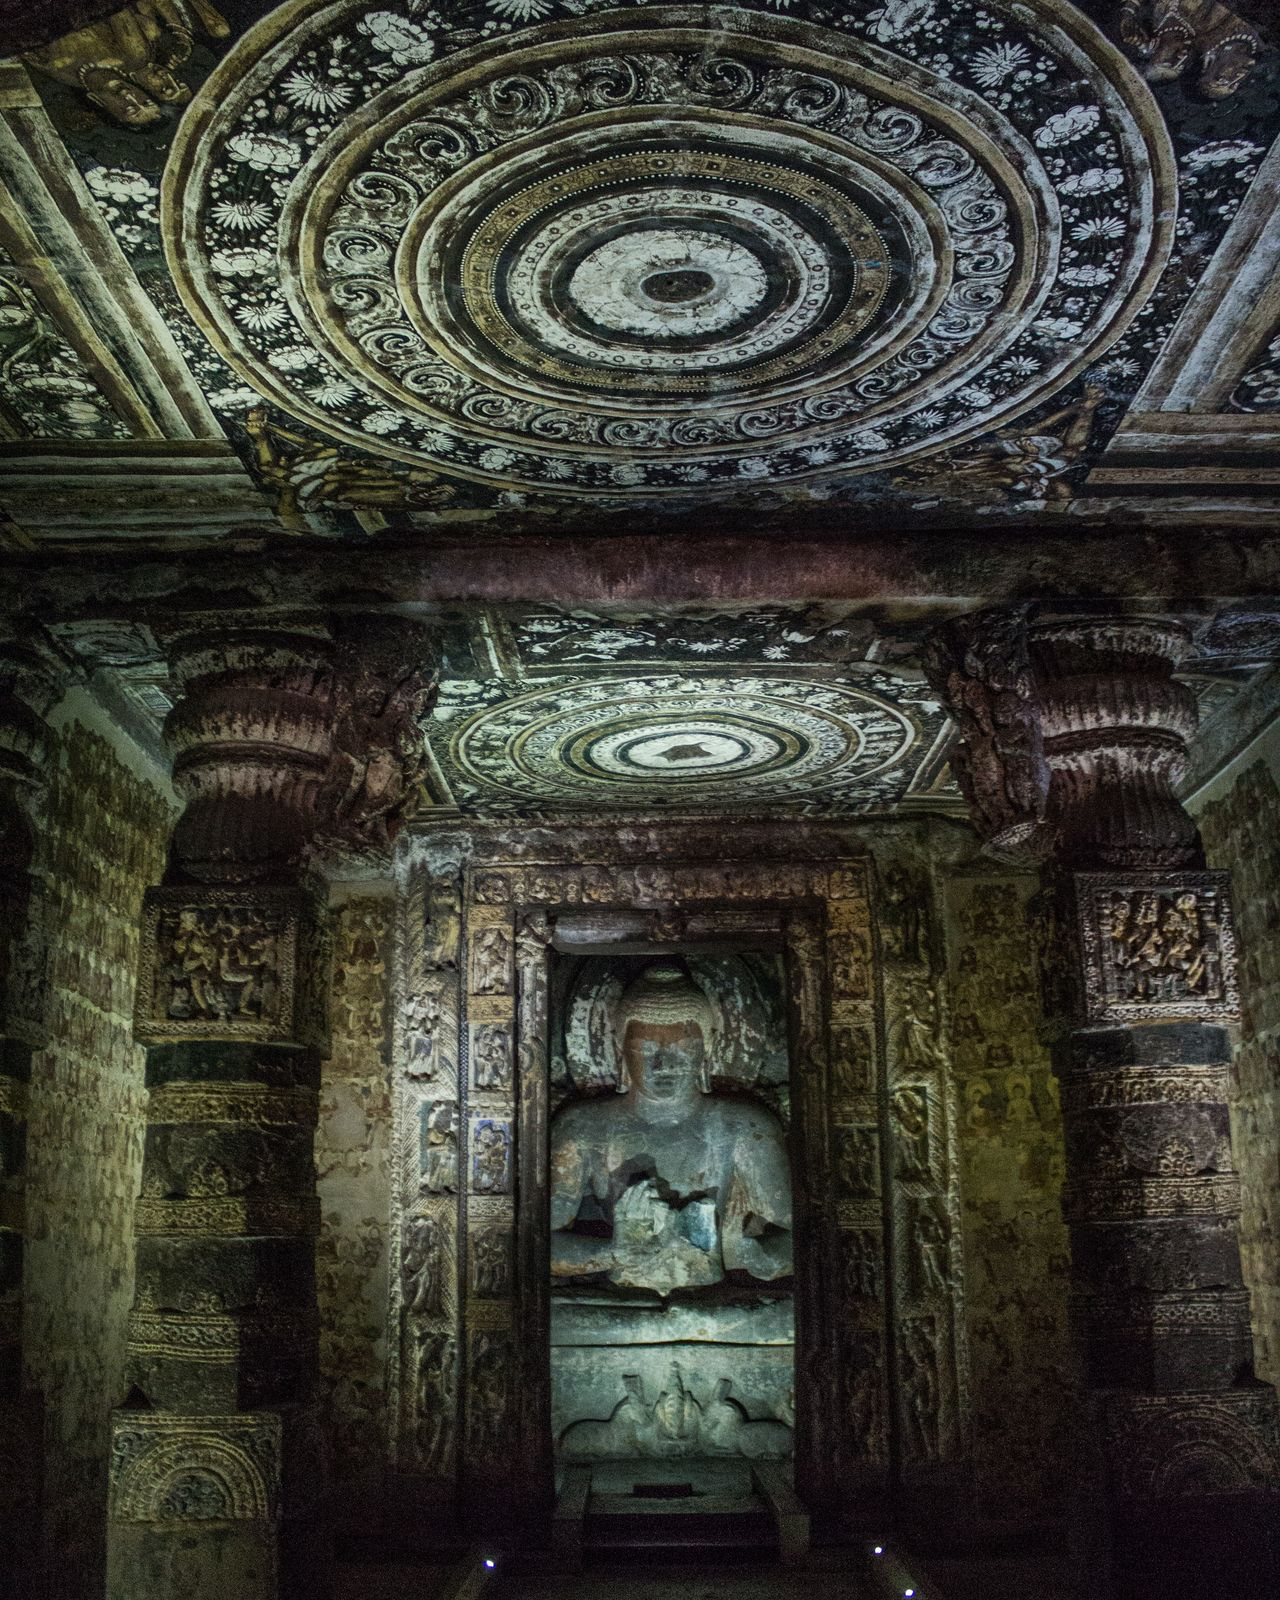 Hypnotizingly tranquil Built Structure Architecture History Ancient Civilization Dramatic Competition Travel Ajanta Ajantacaves Wanderlust Buddha Buddhist Temple Buddhism India Indian Indianstories Cave Caves